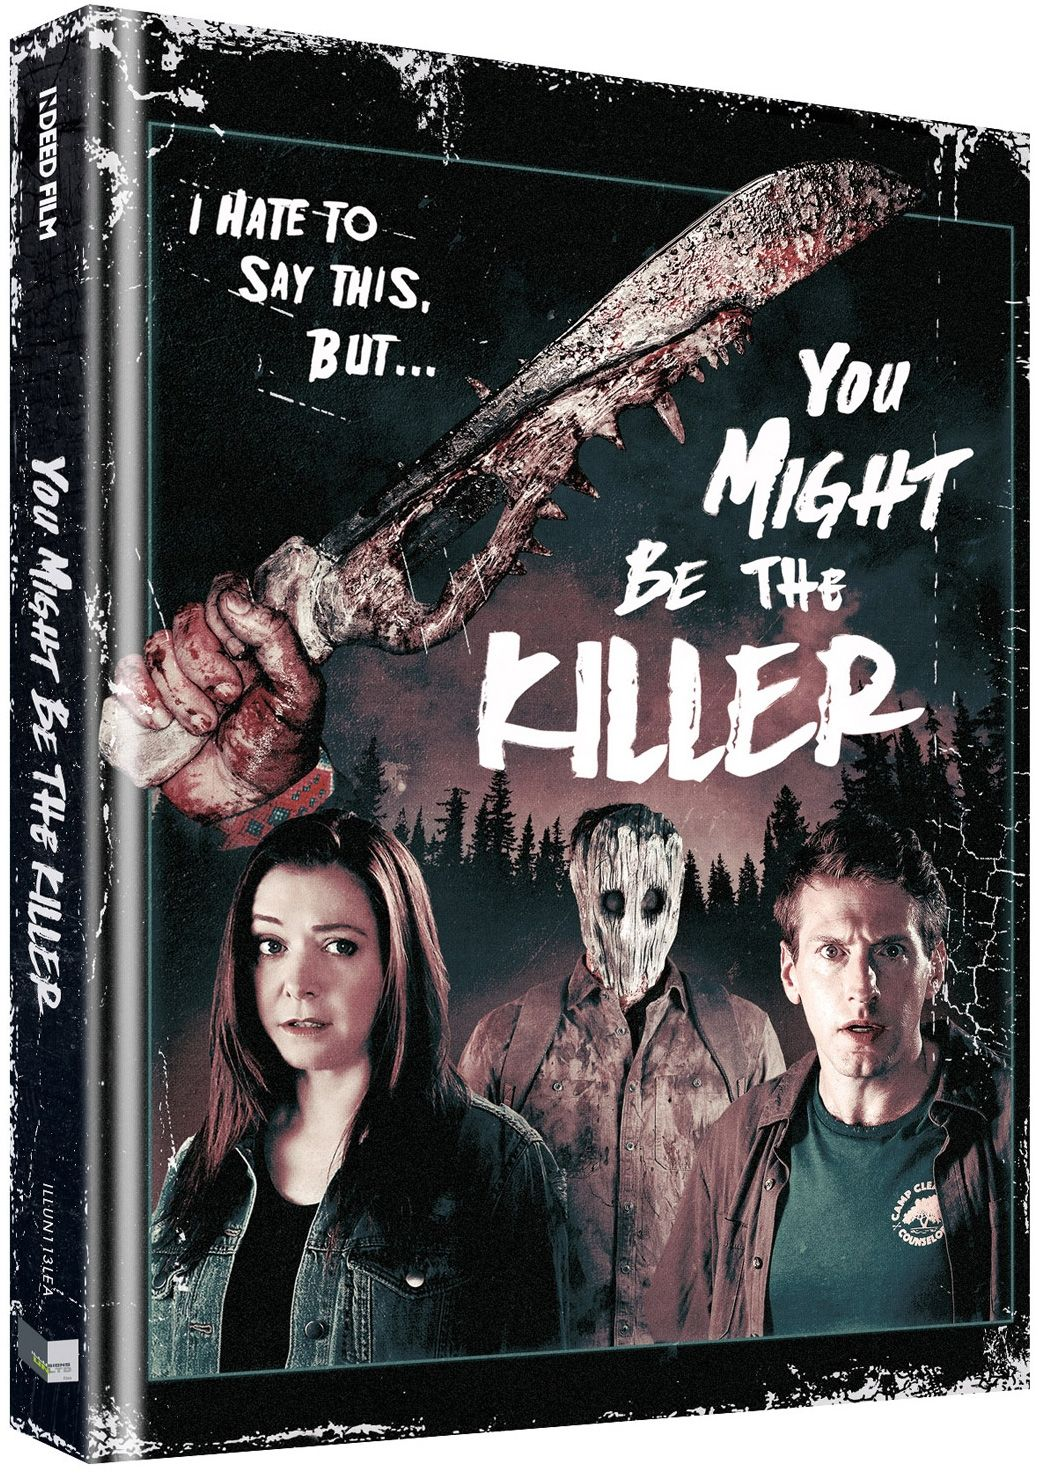 You Might Be the Killer (Lim. Uncut Mediabook - Cover B) (DVD + BLURAY)